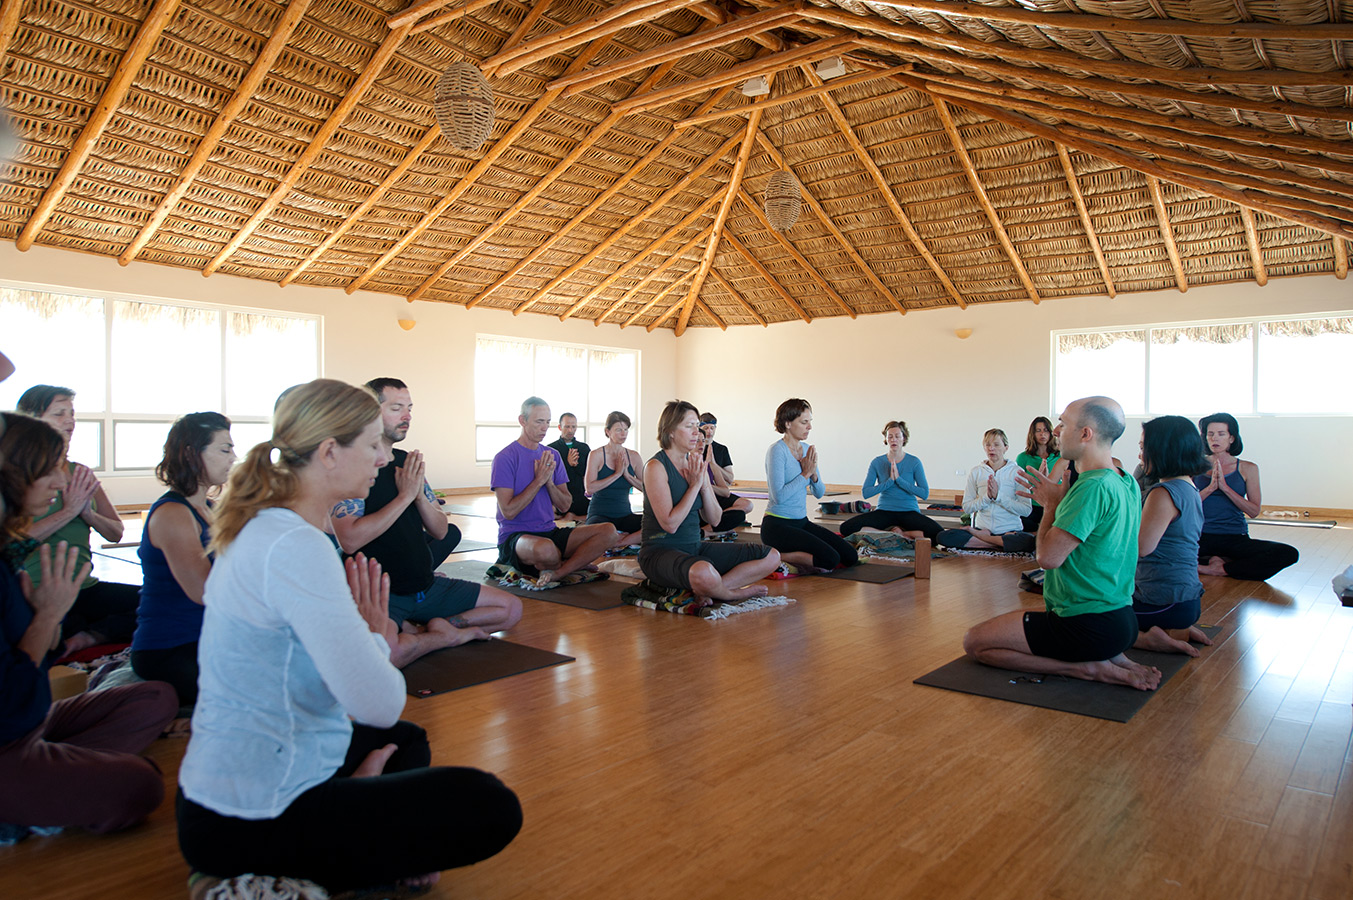 Namaste - Yoga Retreat - Mexico